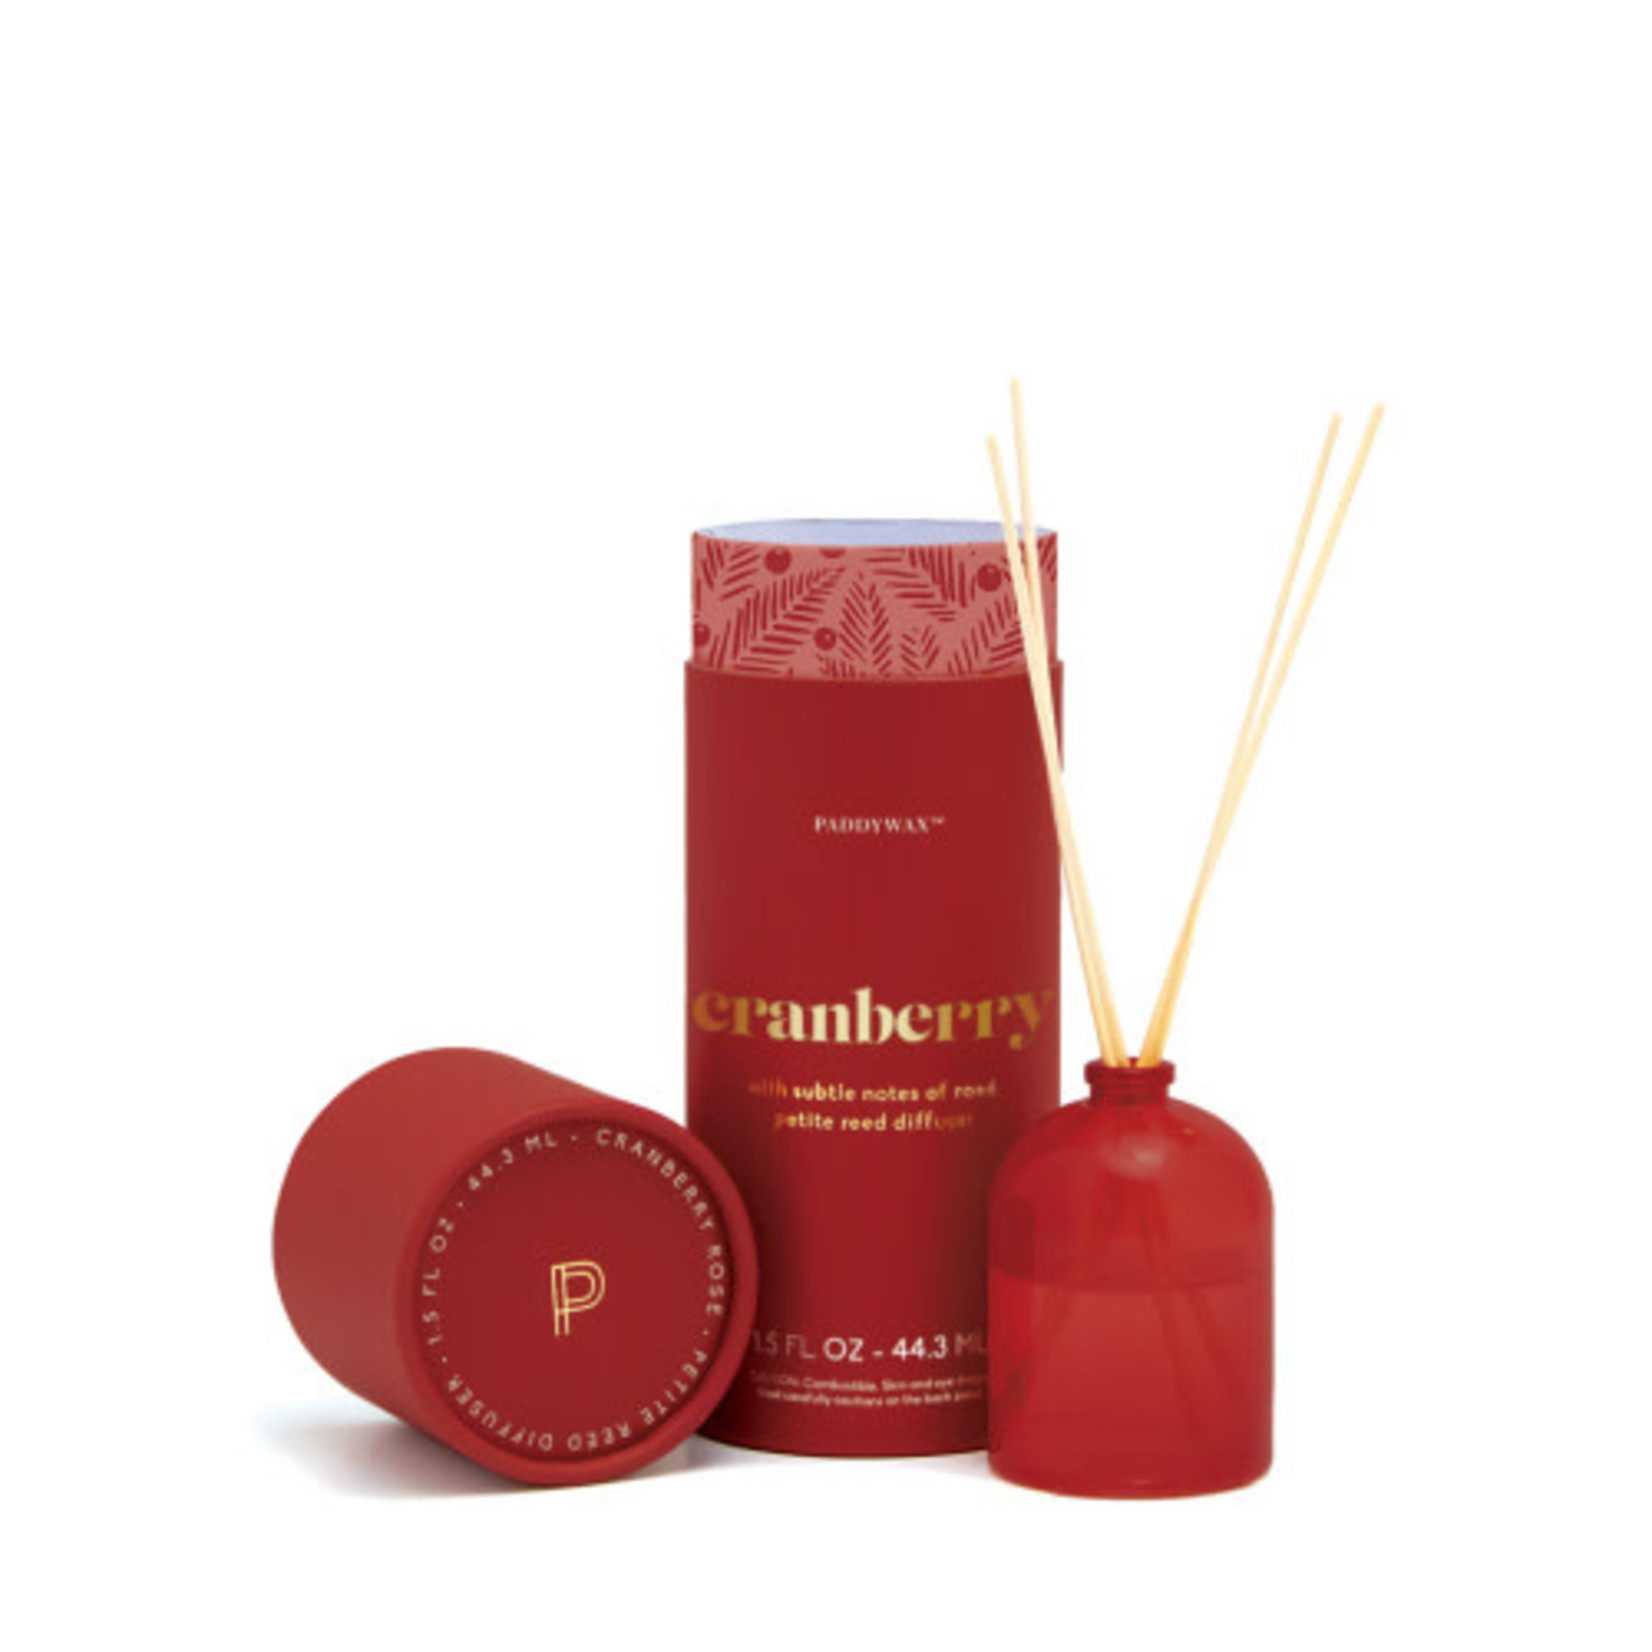 Petite Reed Diffuser, Cranberry